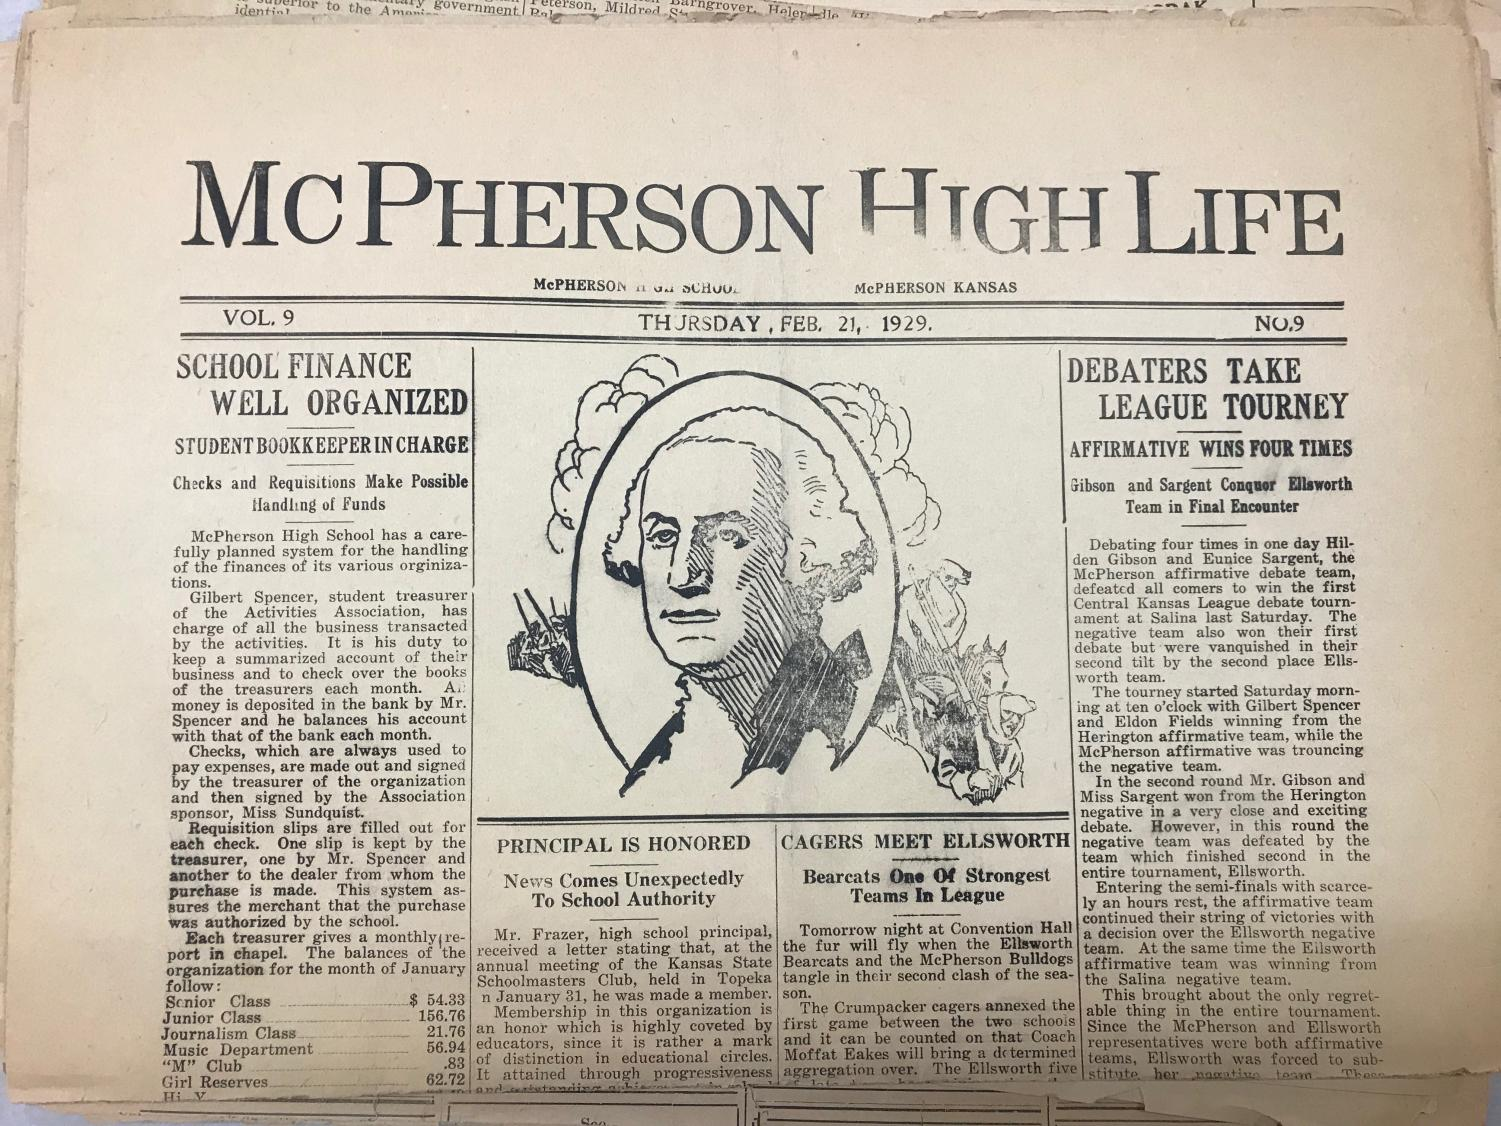 One of the High Life's newspapers from 1929.